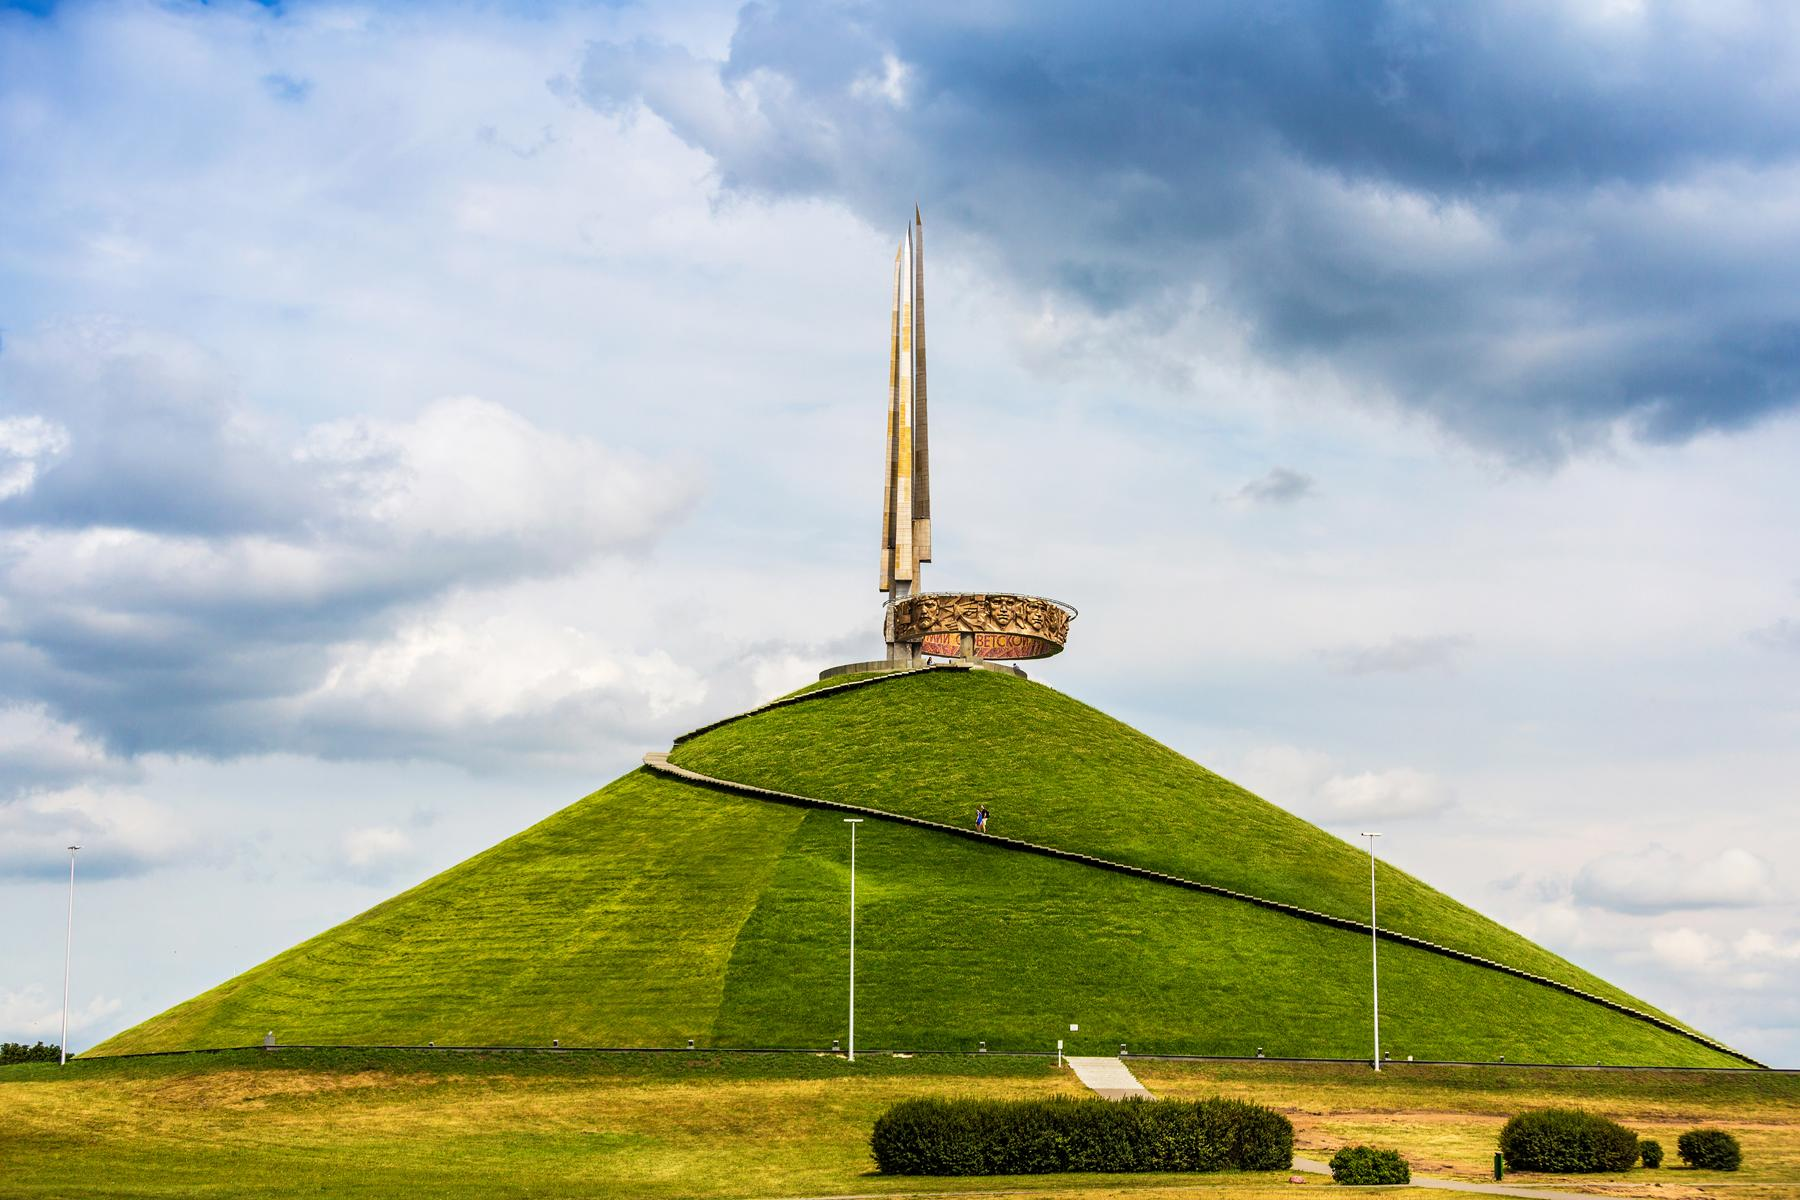 We study the Motherland. Where is the mound